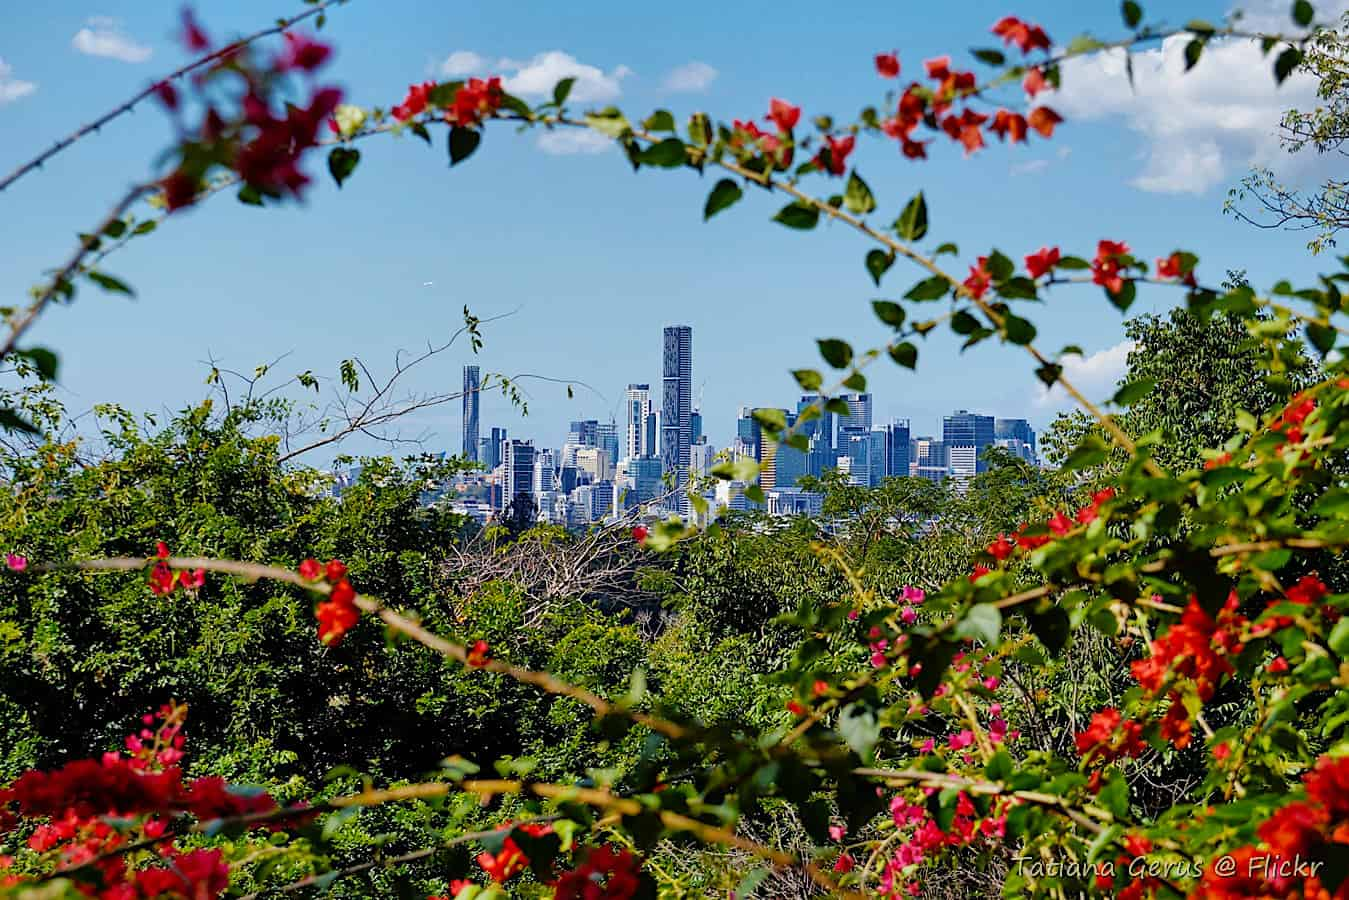 A view of the Brisbane skyline from the Brisbane Botanic Gardens at Mount Coot.